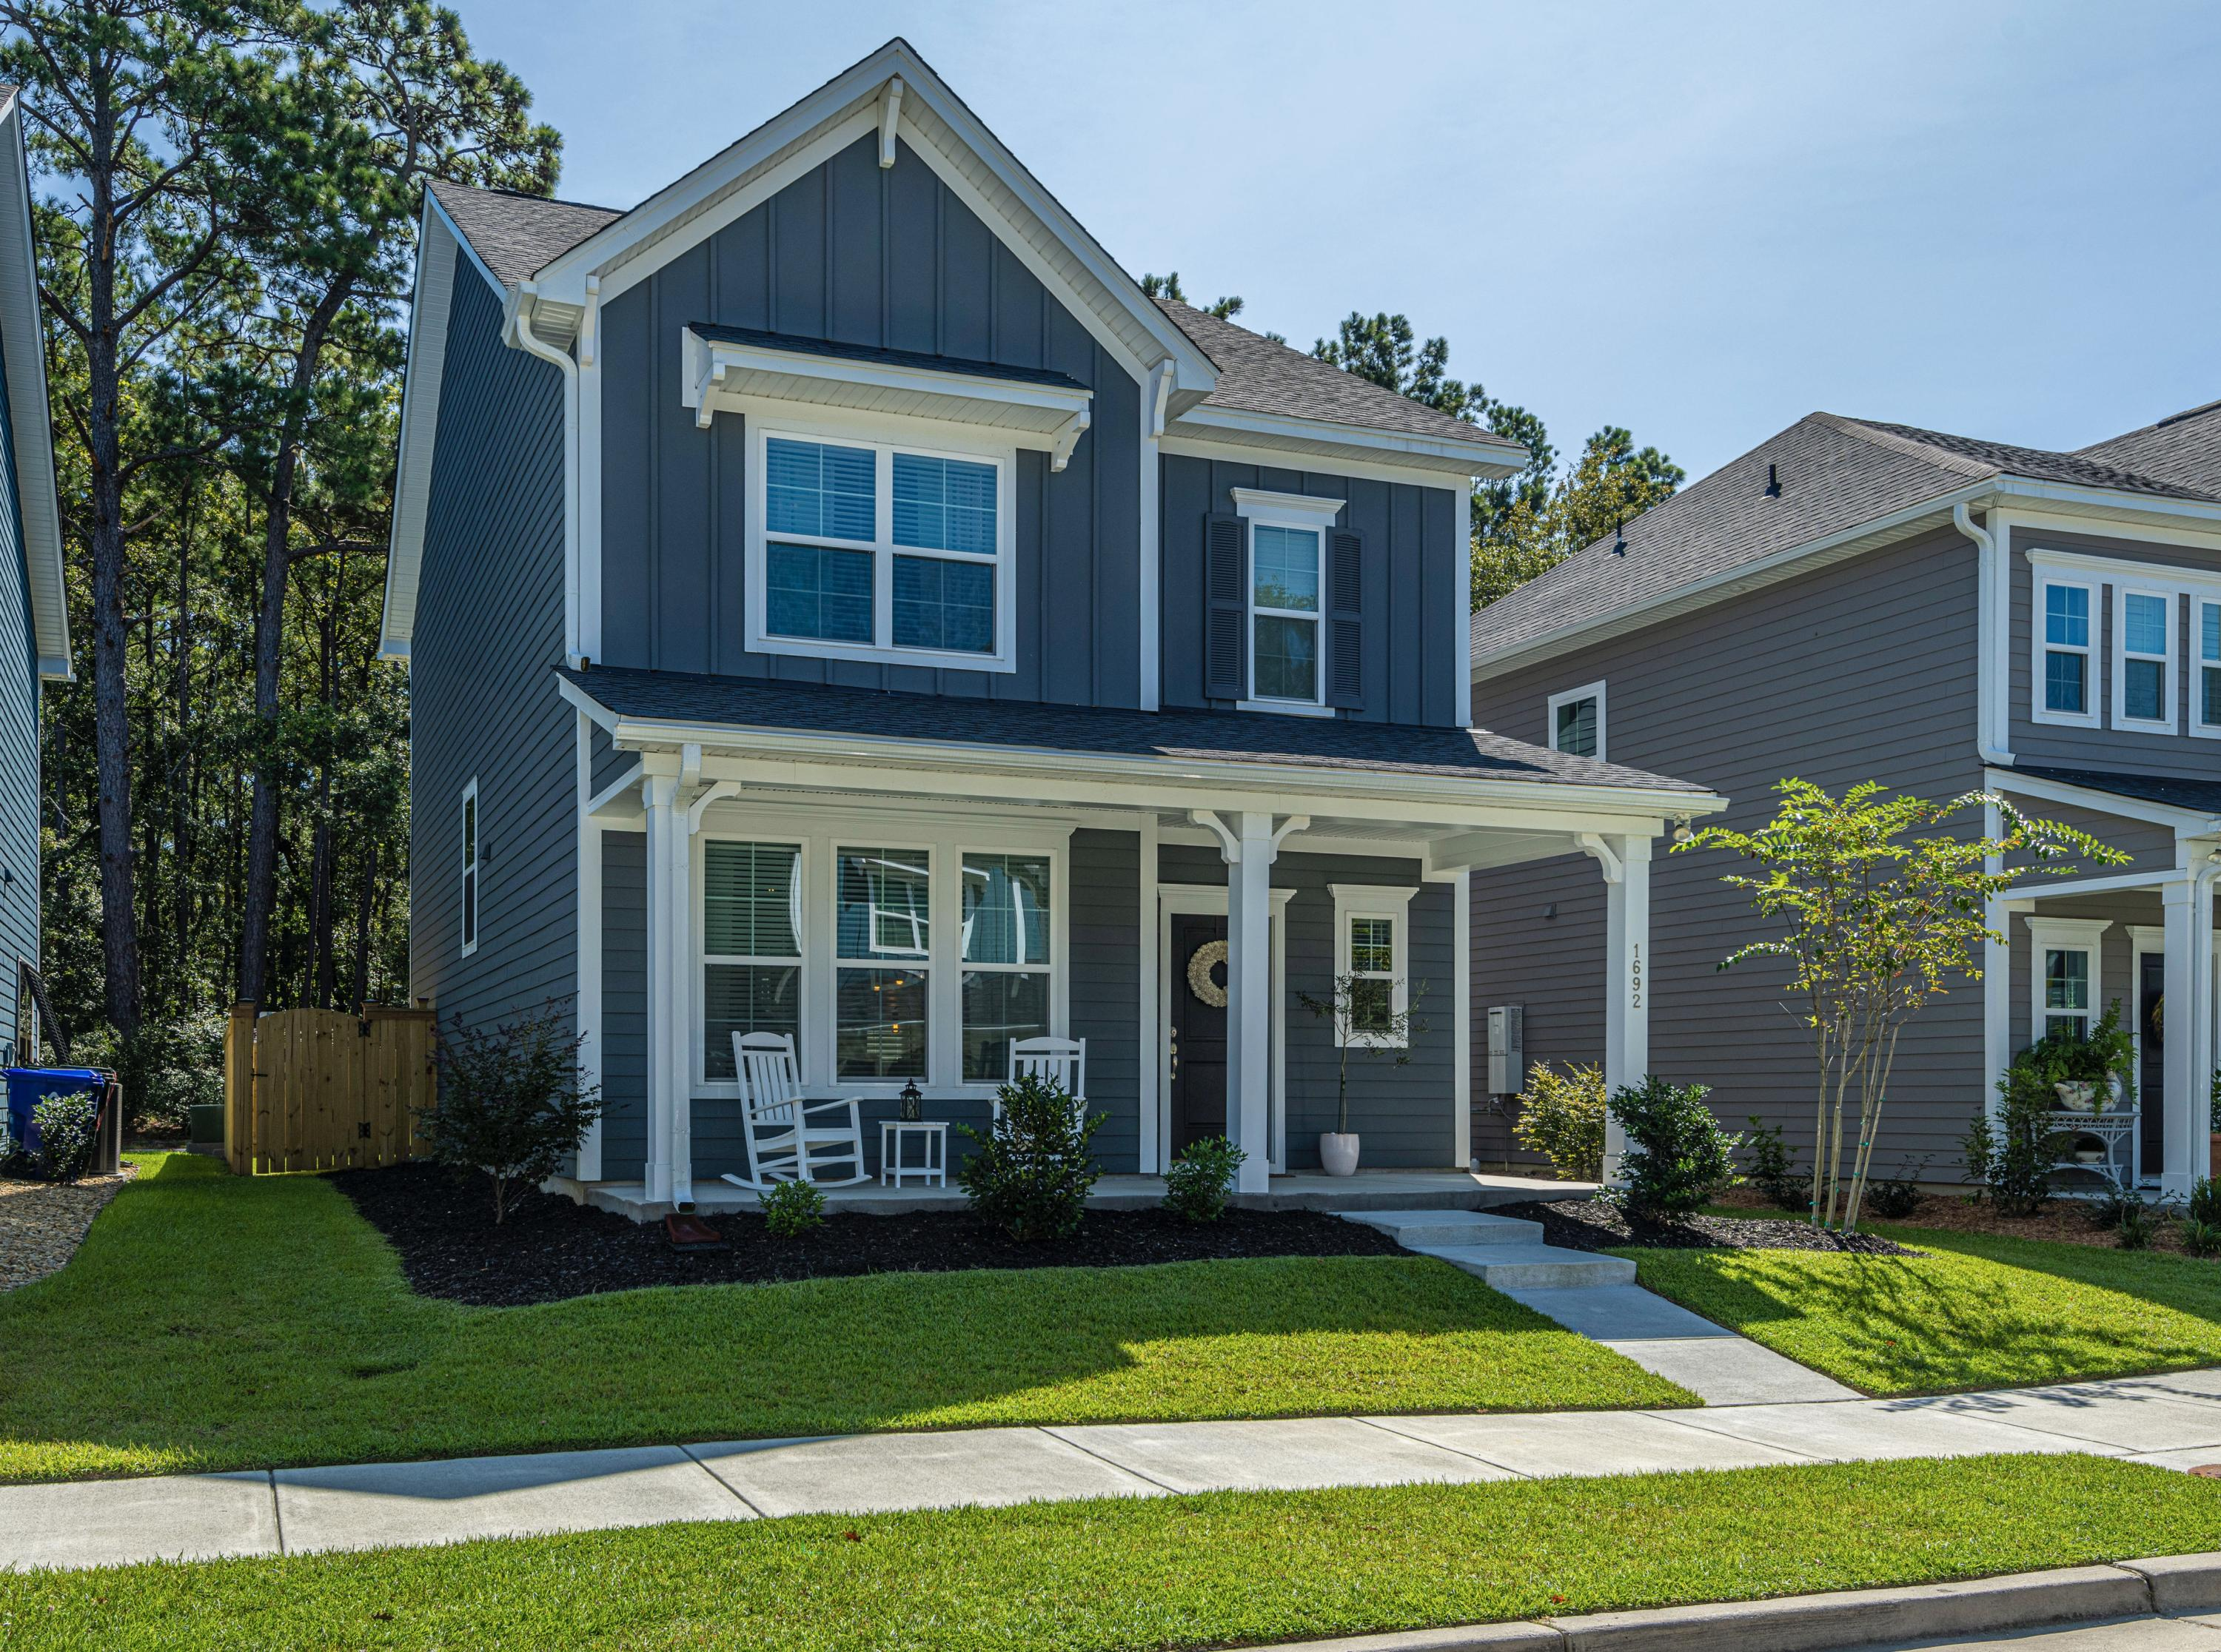 The Oaks at St Johns Crossing Homes For Sale - 1692 Emmets, Johns Island, SC - 11